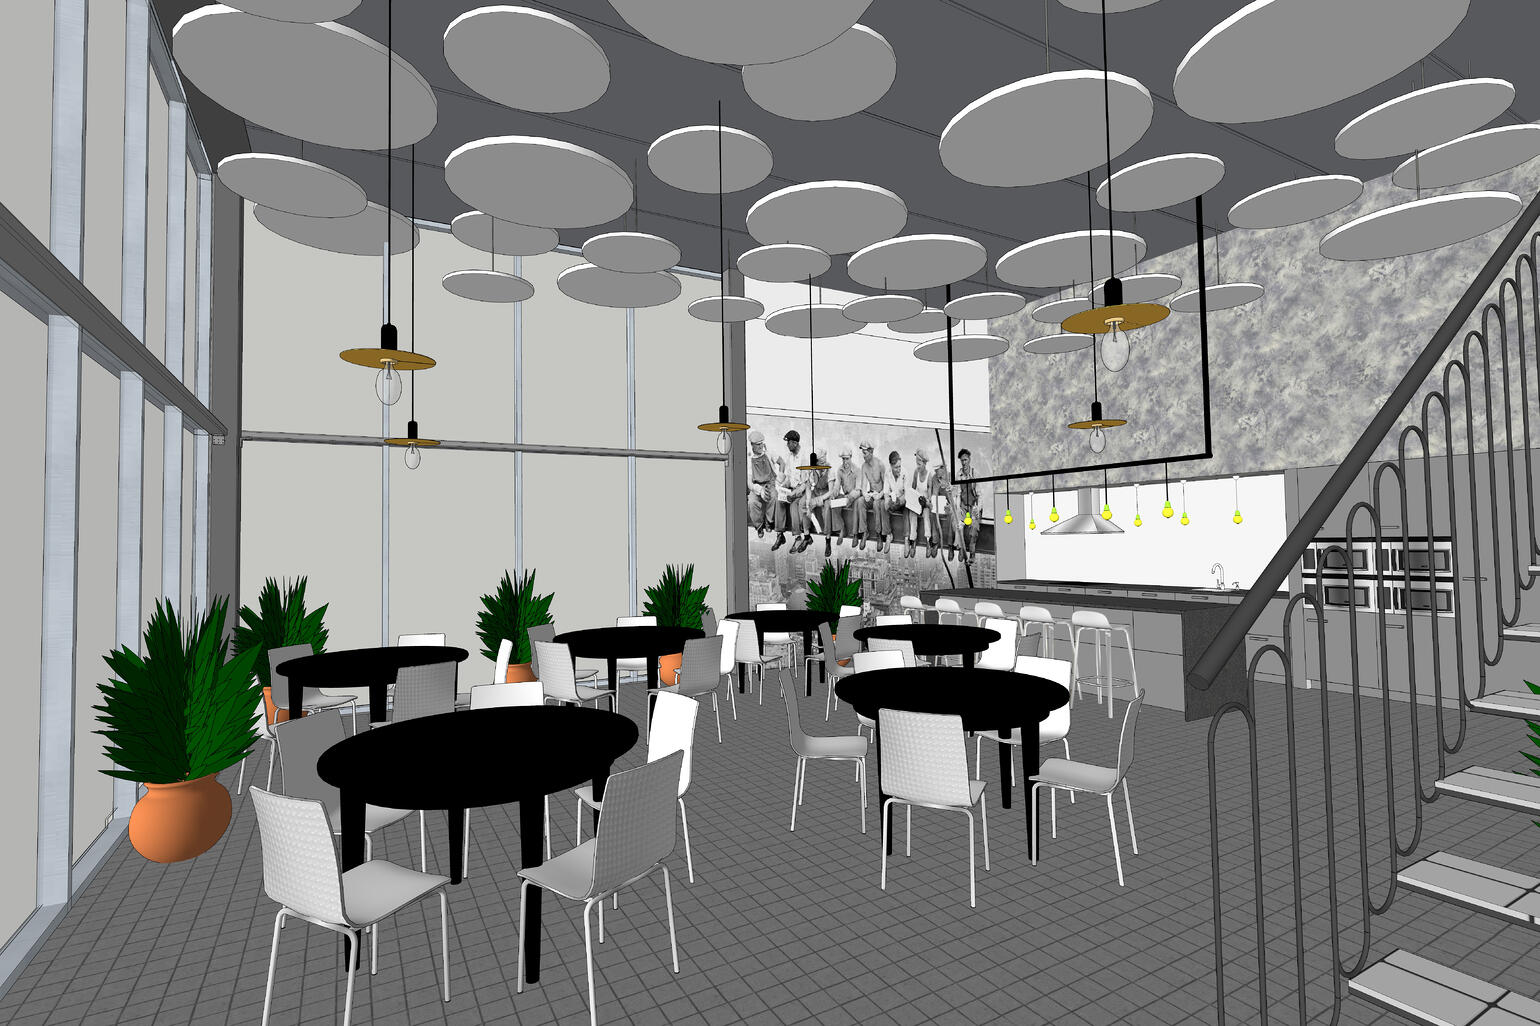 A lunchroom scene from the model of Northpower Stålhallar's office model in SketchUp